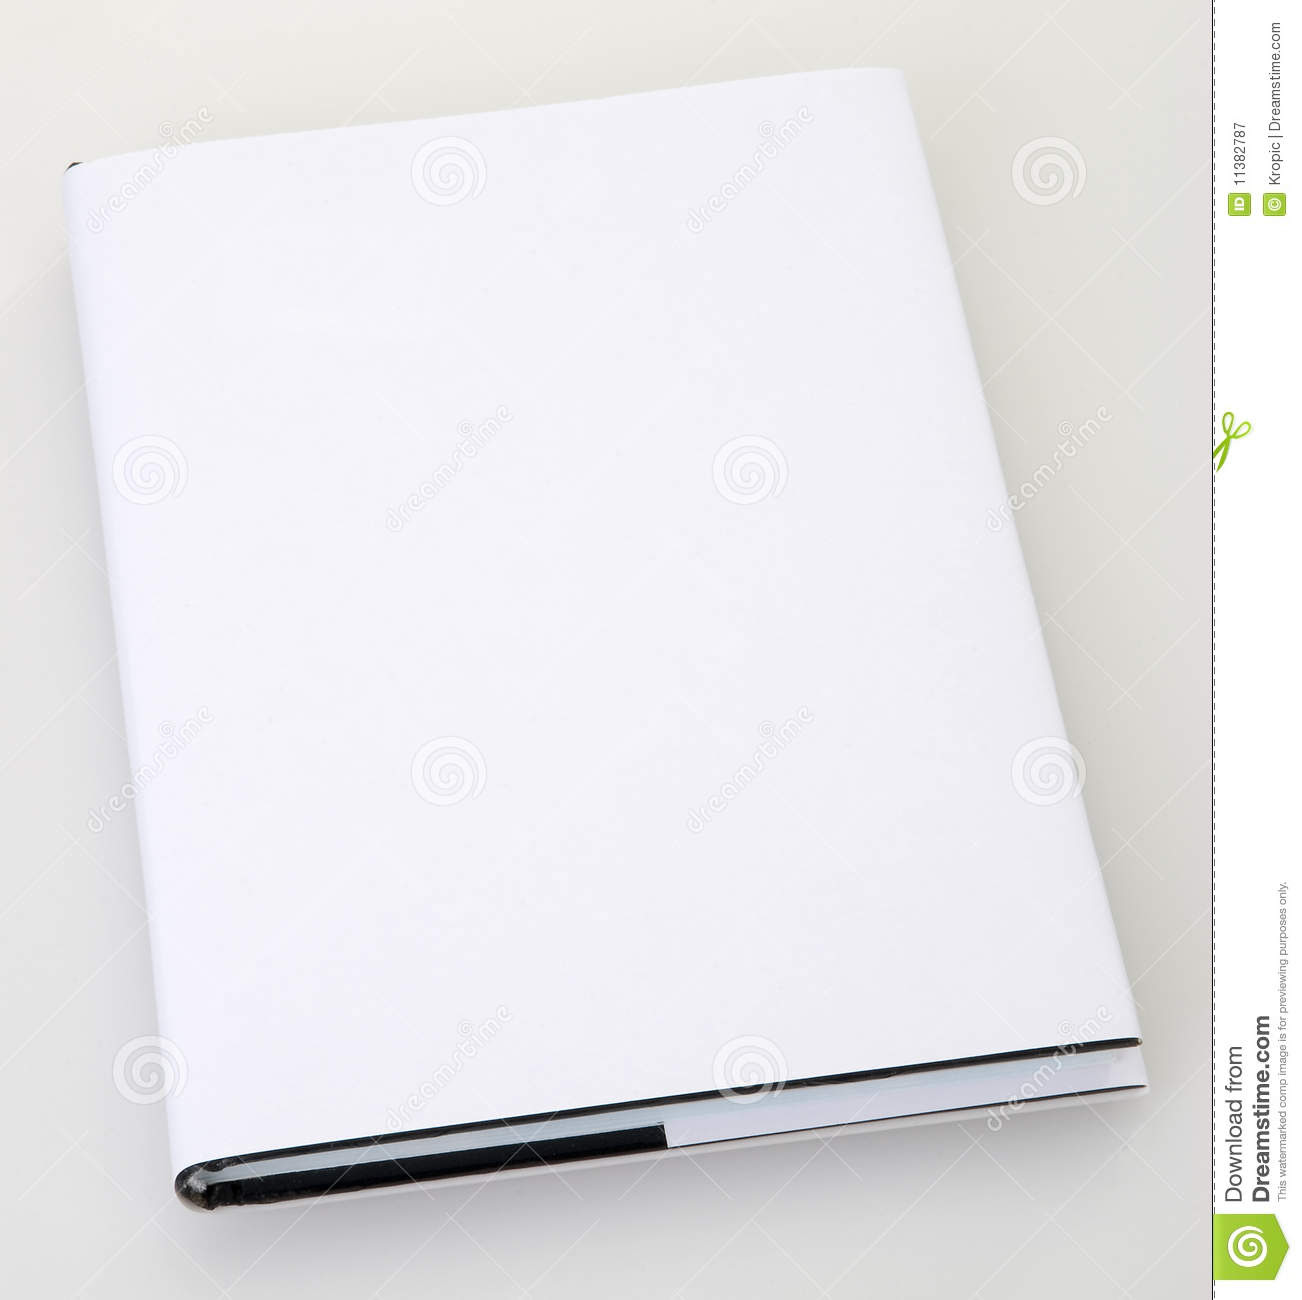 Blank Book Cover Royalty Free Stock Photography - Image: 11382787